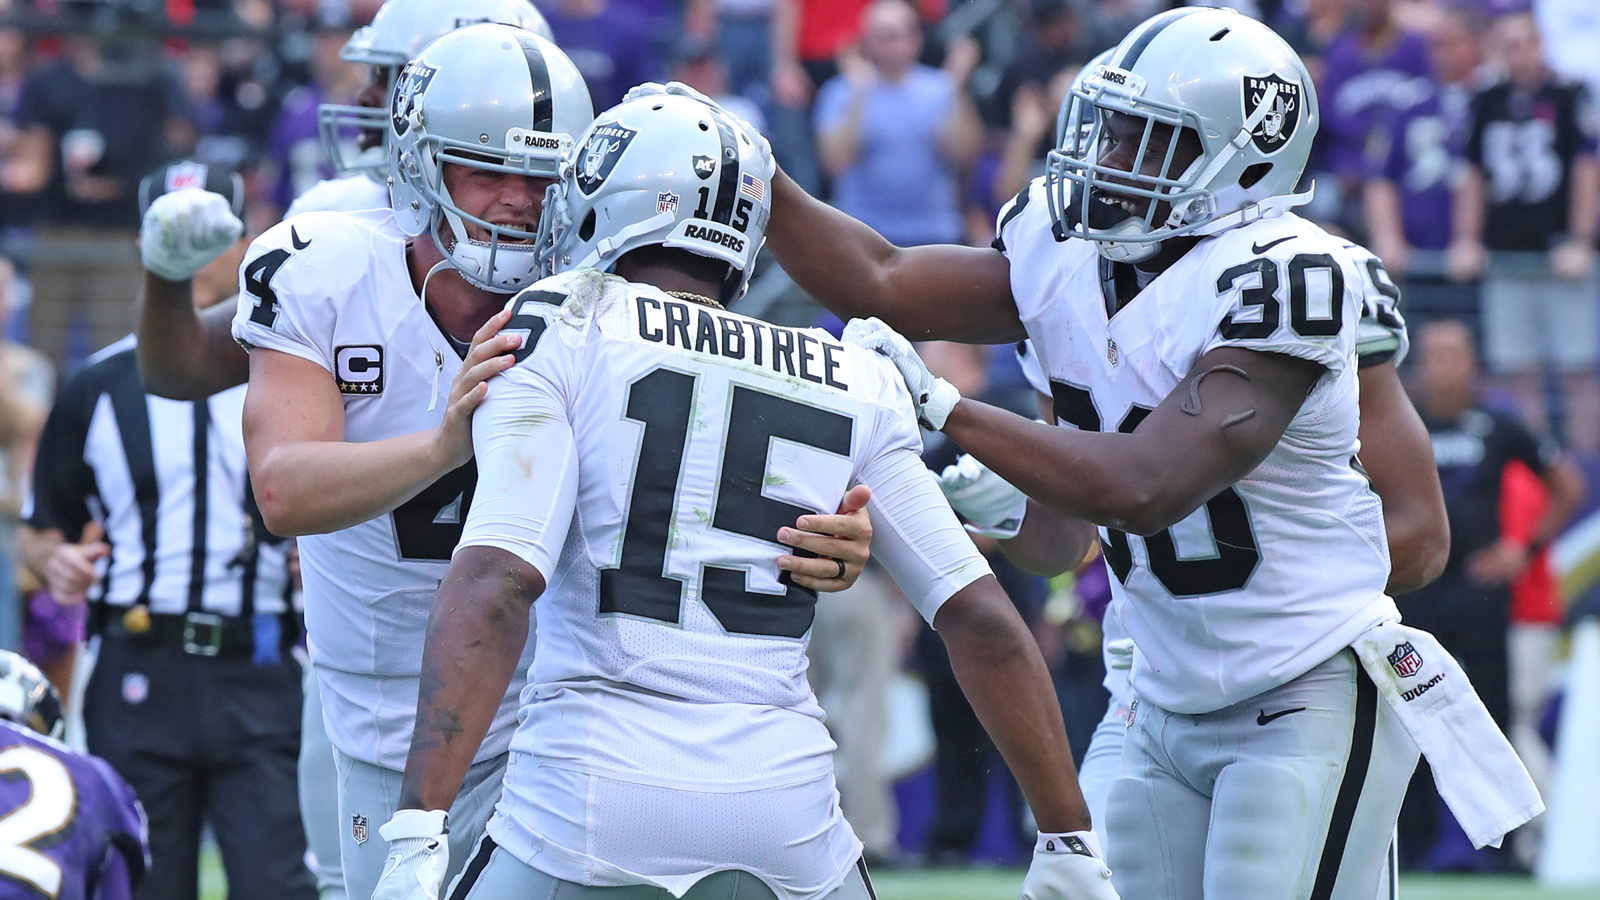 Crabtree emerging as Raiders' top target heading into Chargers matchup